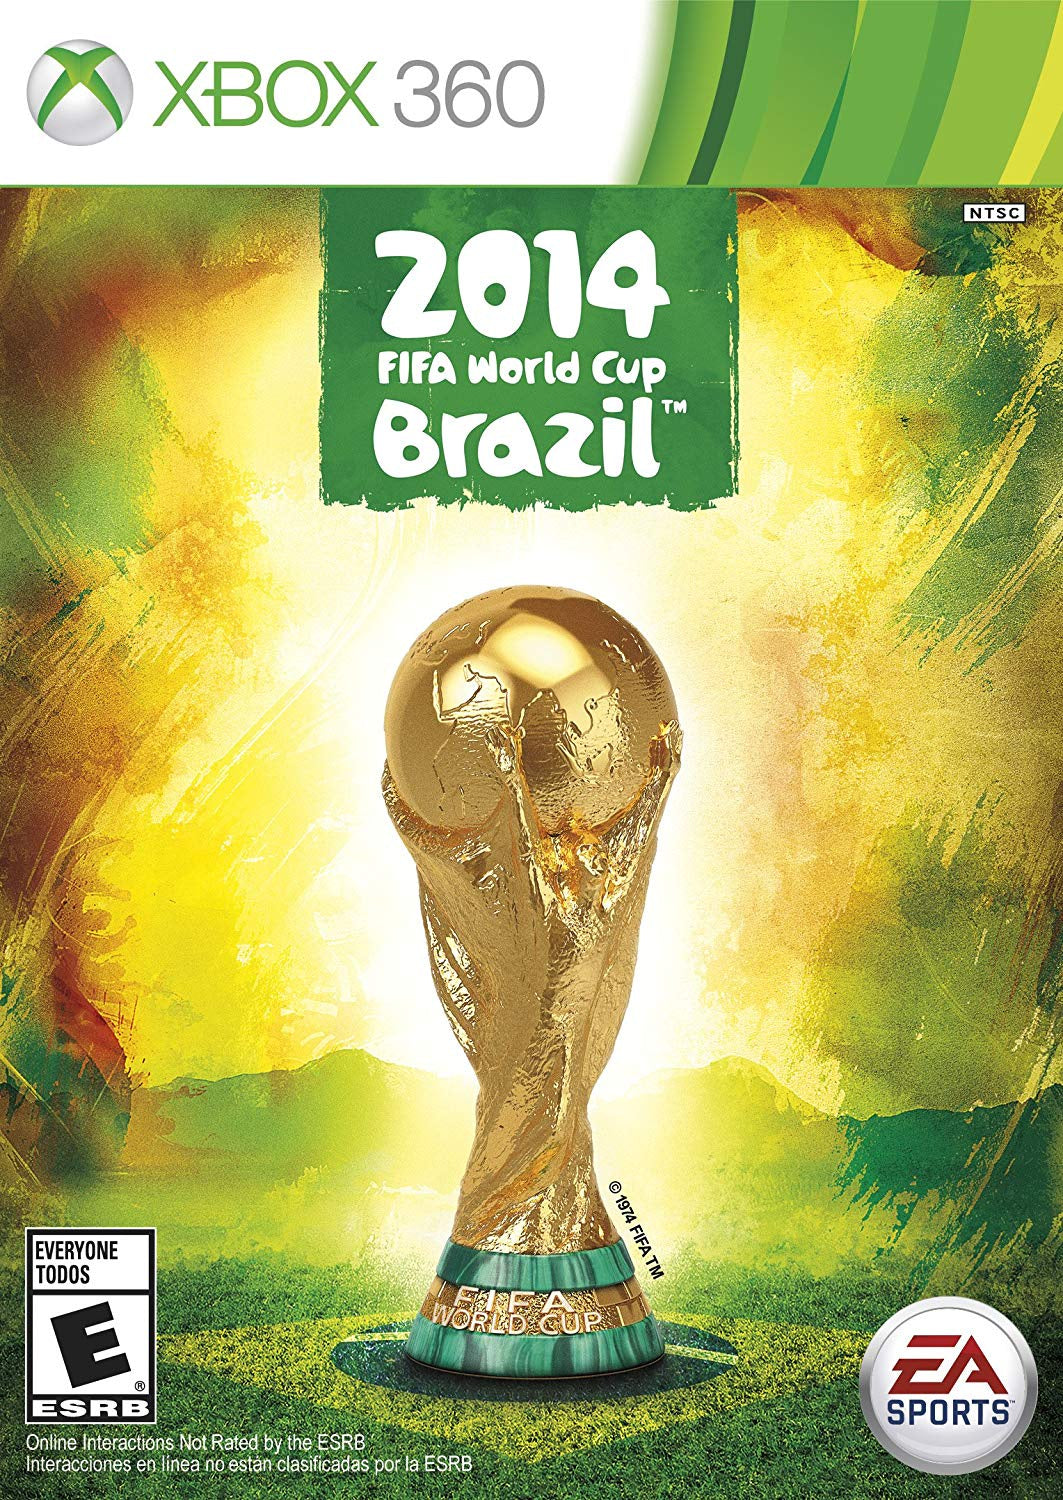 2014 FIFA World Cup Brazil - Xbox 360 (Pre-owned)